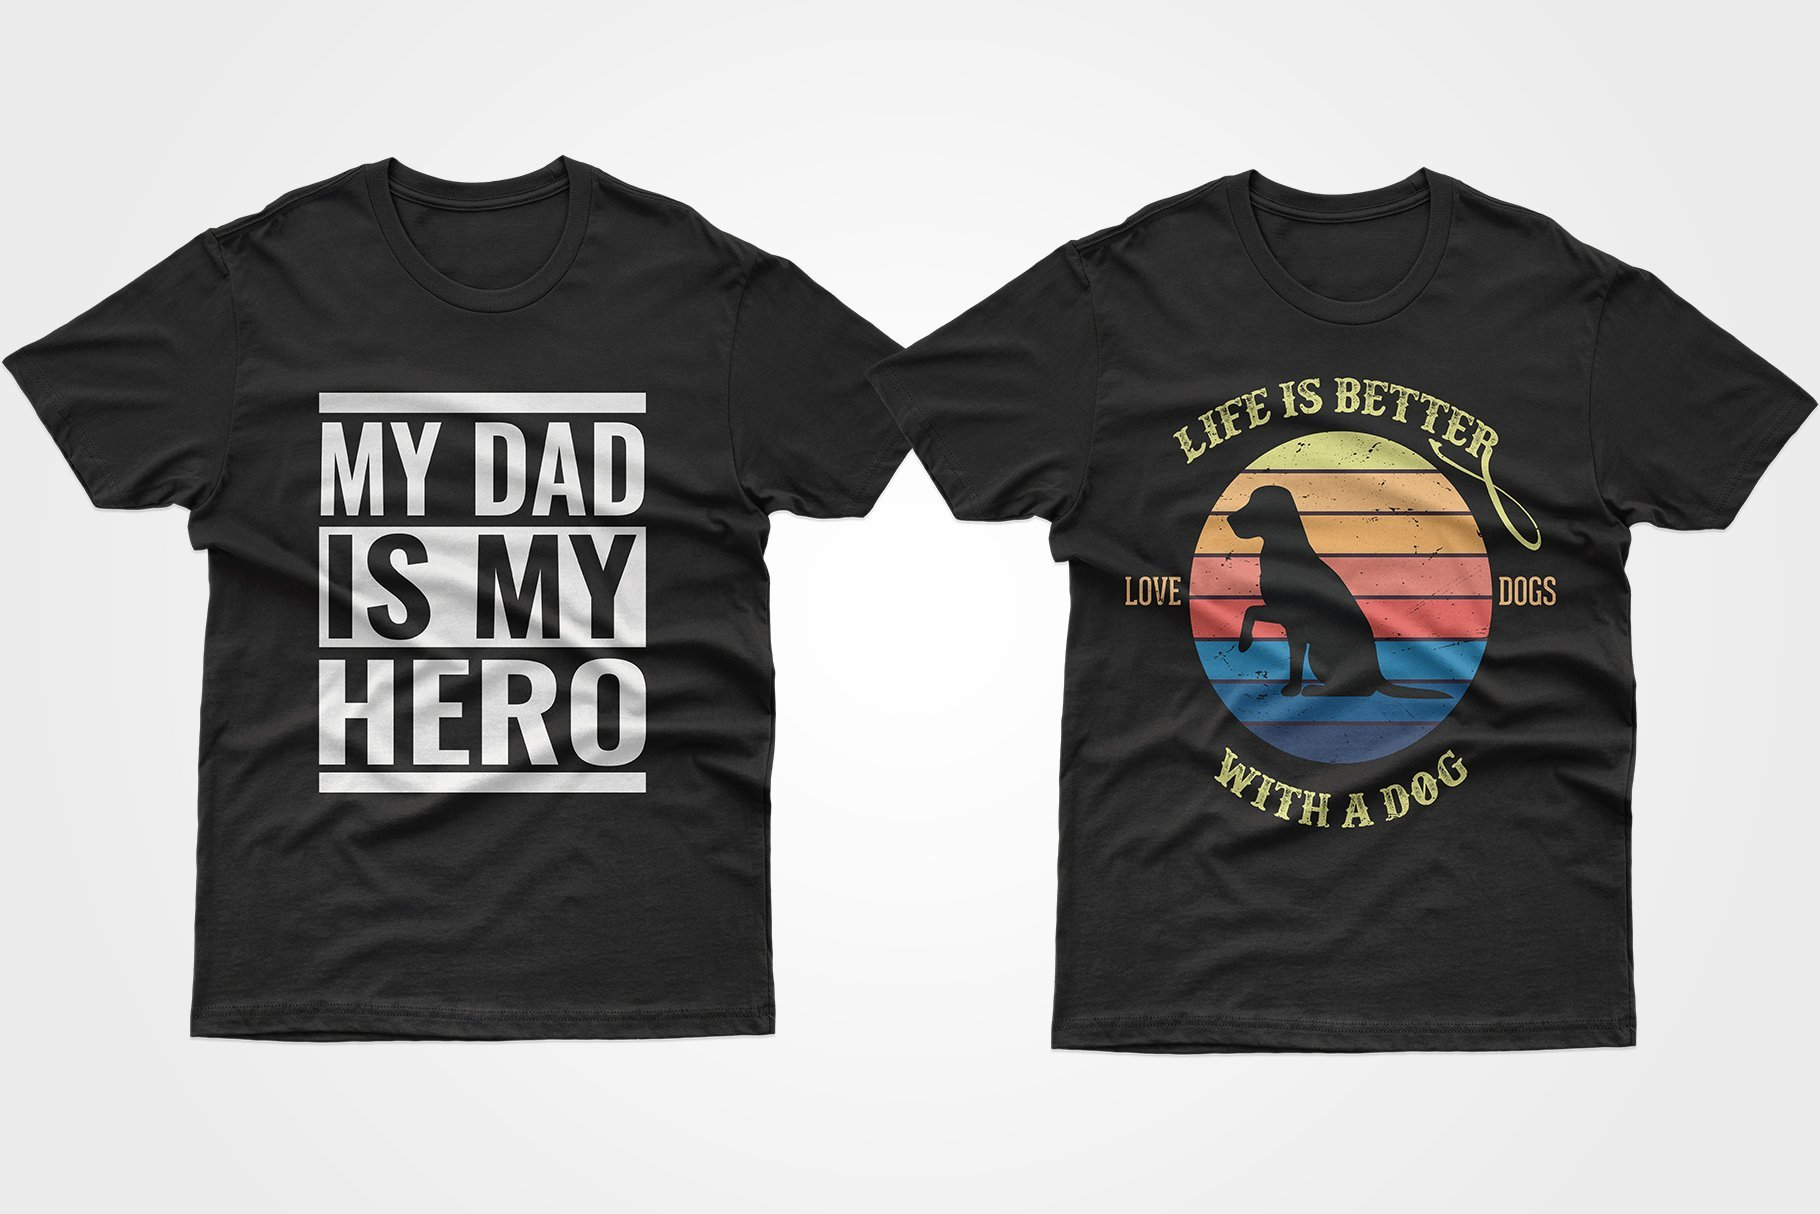 Two black T-shirts - one about the father, the other about the dog.